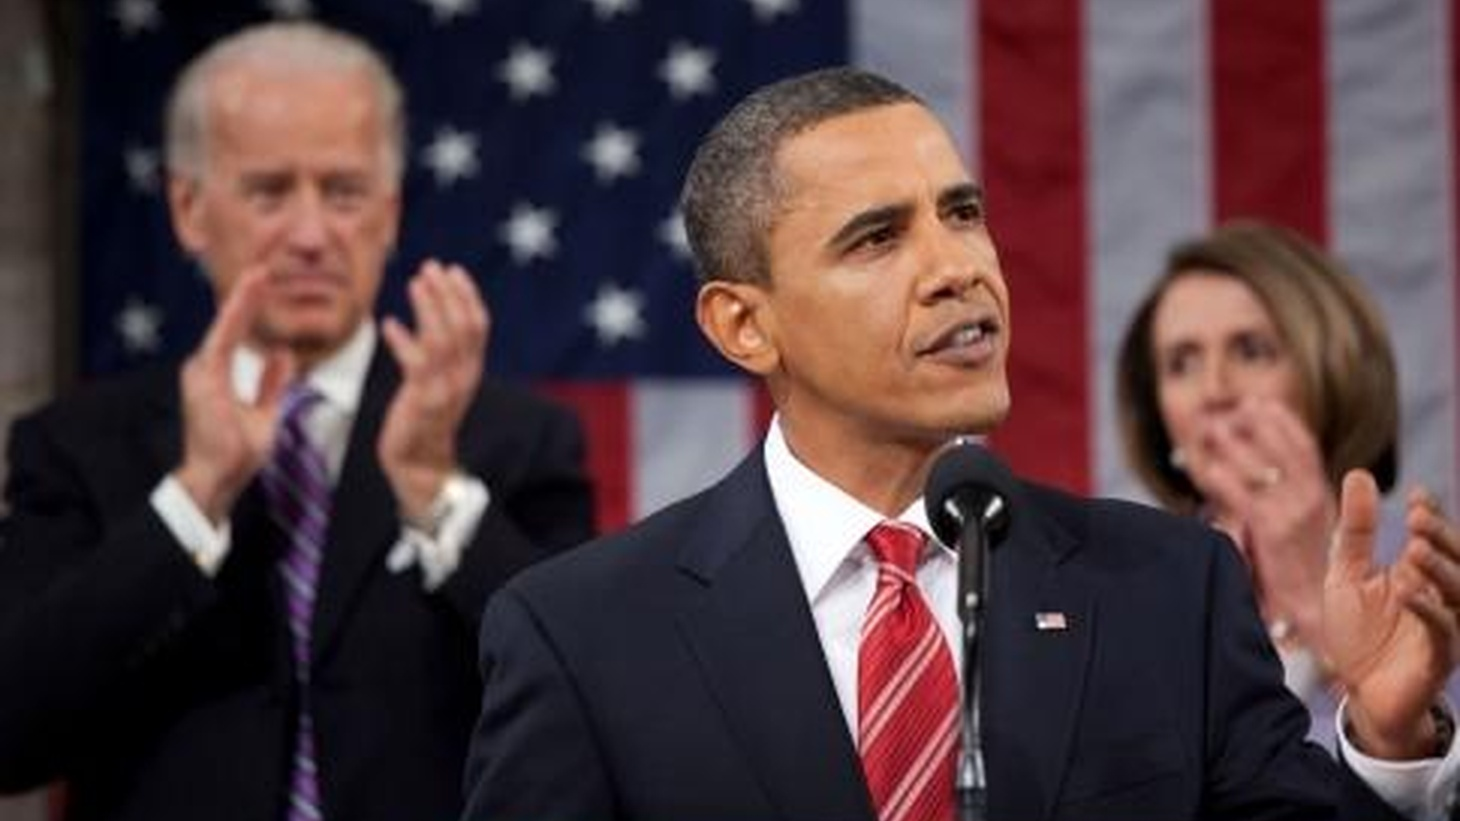 During last night's State of the Union Address, President Obama admitted mistakes while defending his first year in office. What does he want for the future, and what is he likely to get? We sample opinions. Also, President Karzai's new priority, reaching out to the Taliban, and Toyota's struggle to stay on top.